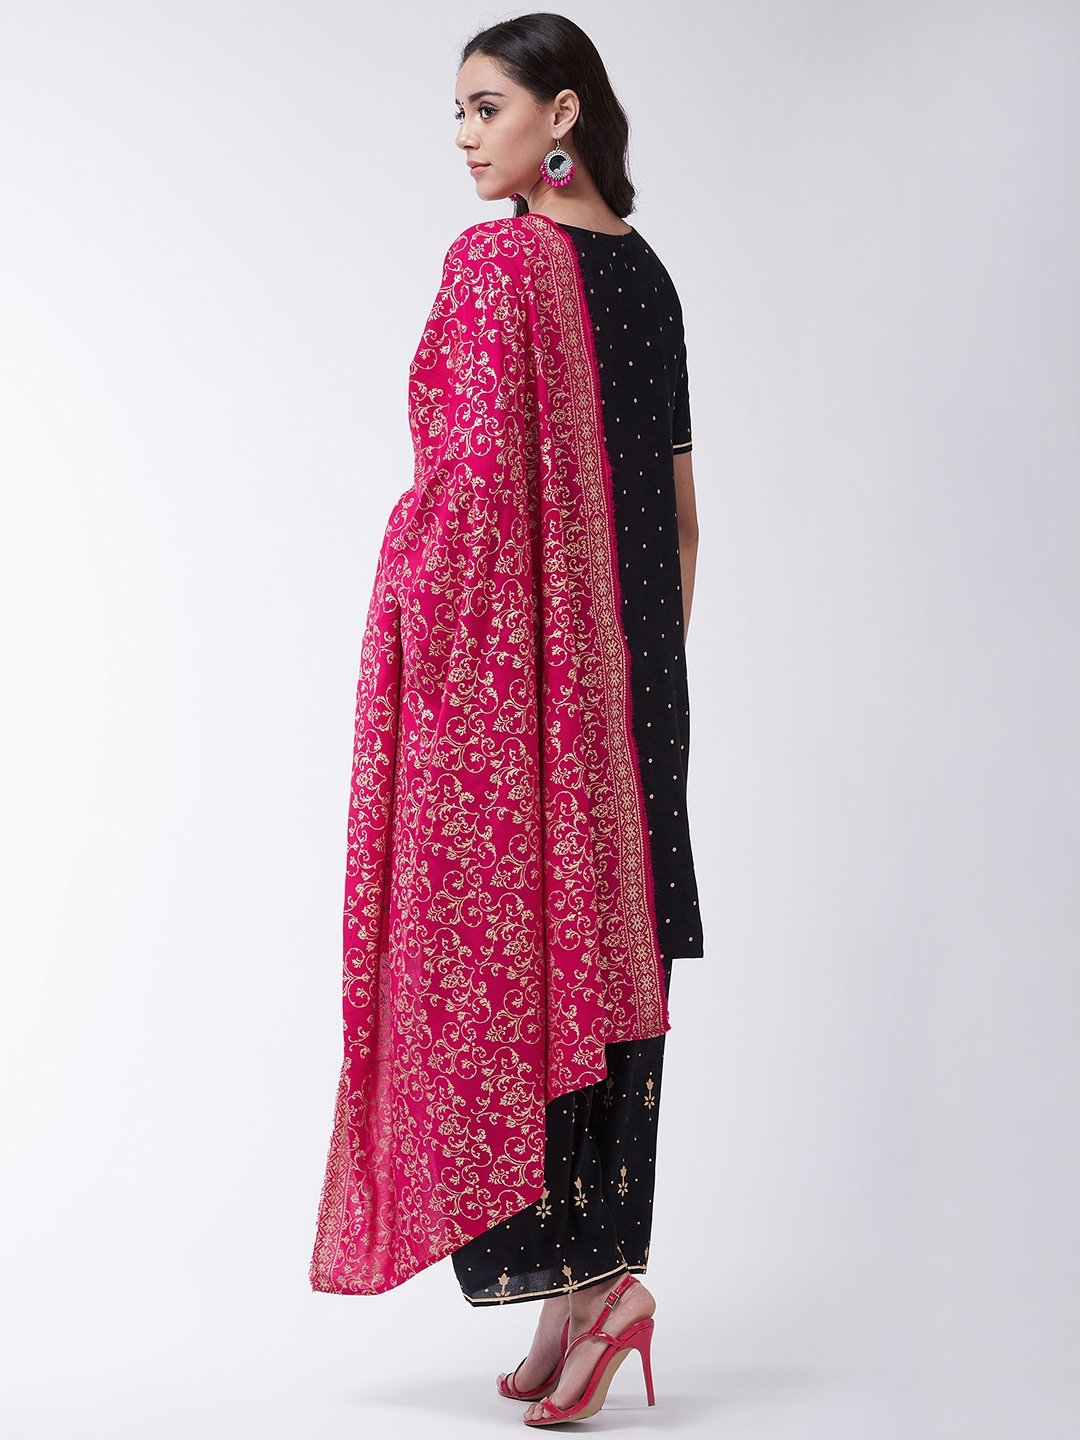 Black Gold Print Kurta Palazo Set With Magenta Dupatta